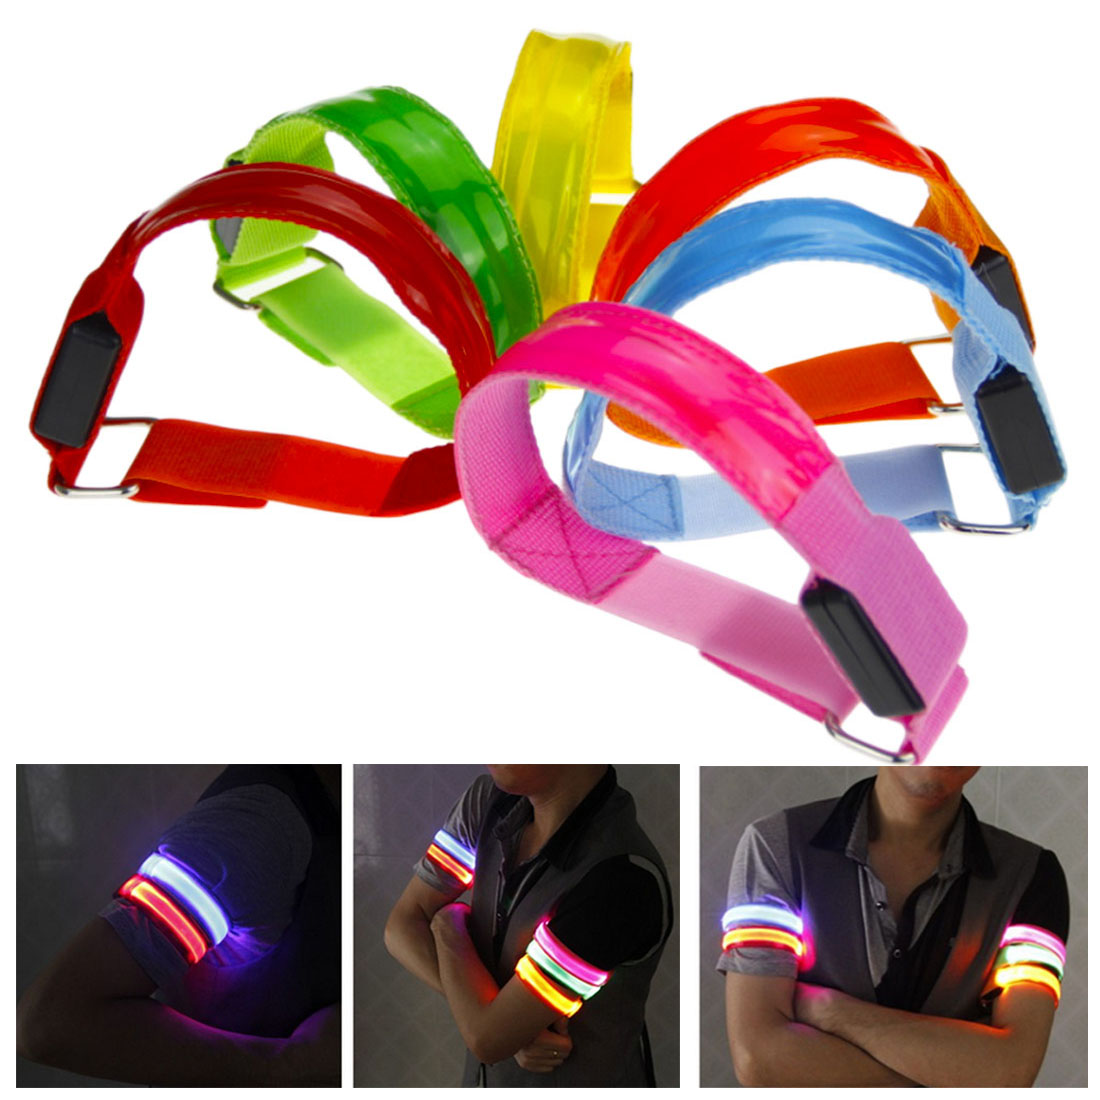 Arm Warmer Belt Bike LED Armband LED Safety Sports Reflective Belt Strap Snap Wrap Arm Band Armband Light